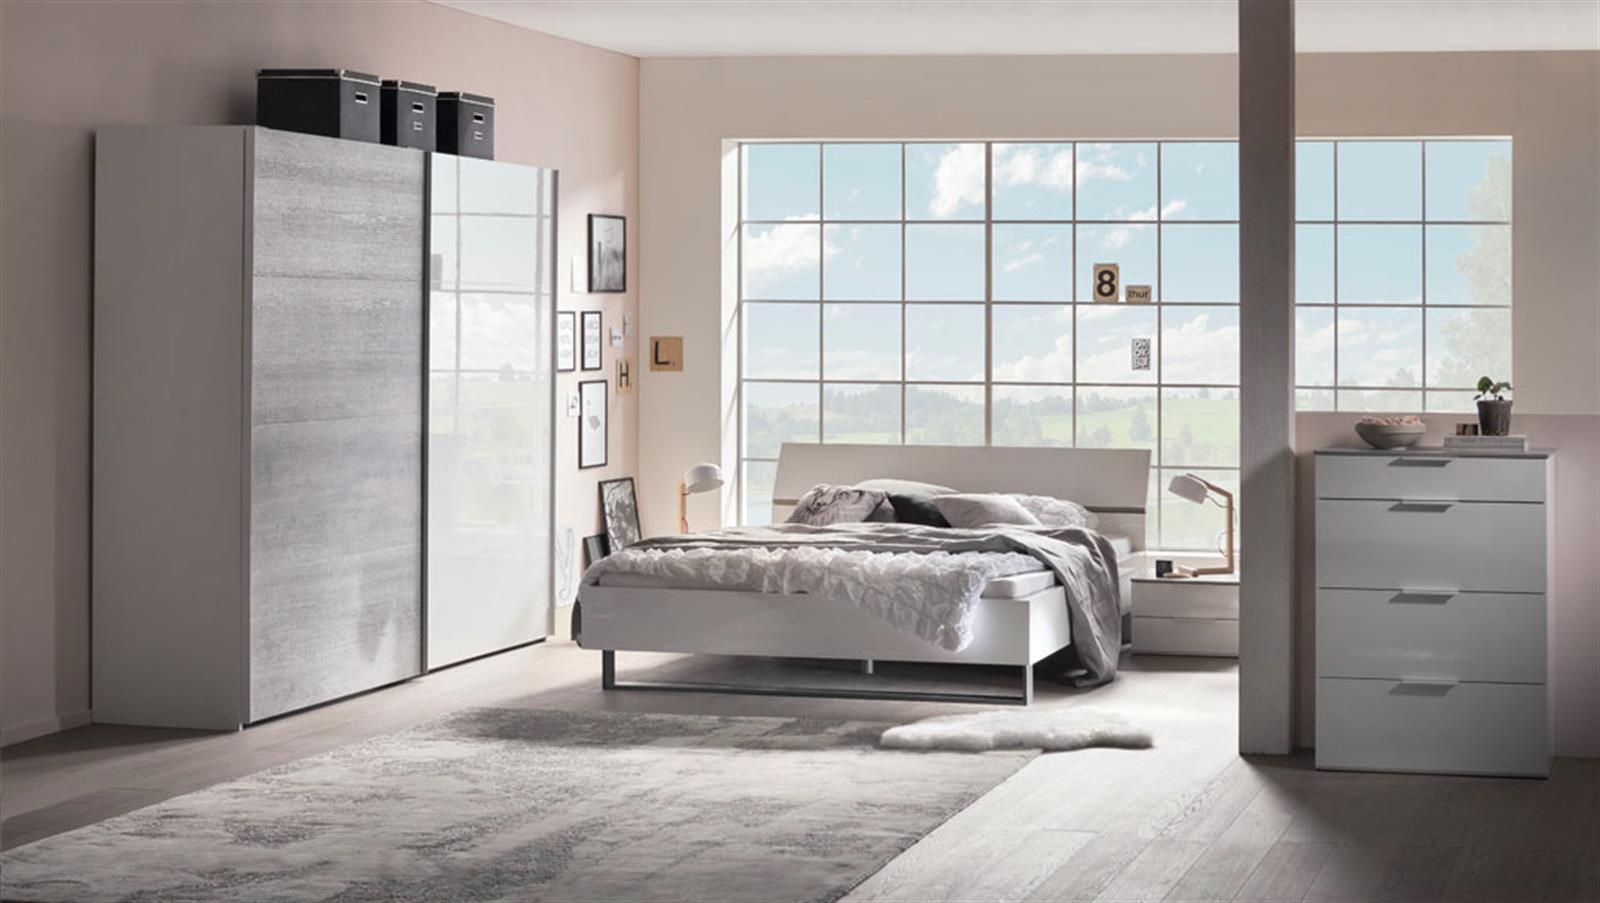 conforama r frig rateur lave vaisselle editus. Black Bedroom Furniture Sets. Home Design Ideas